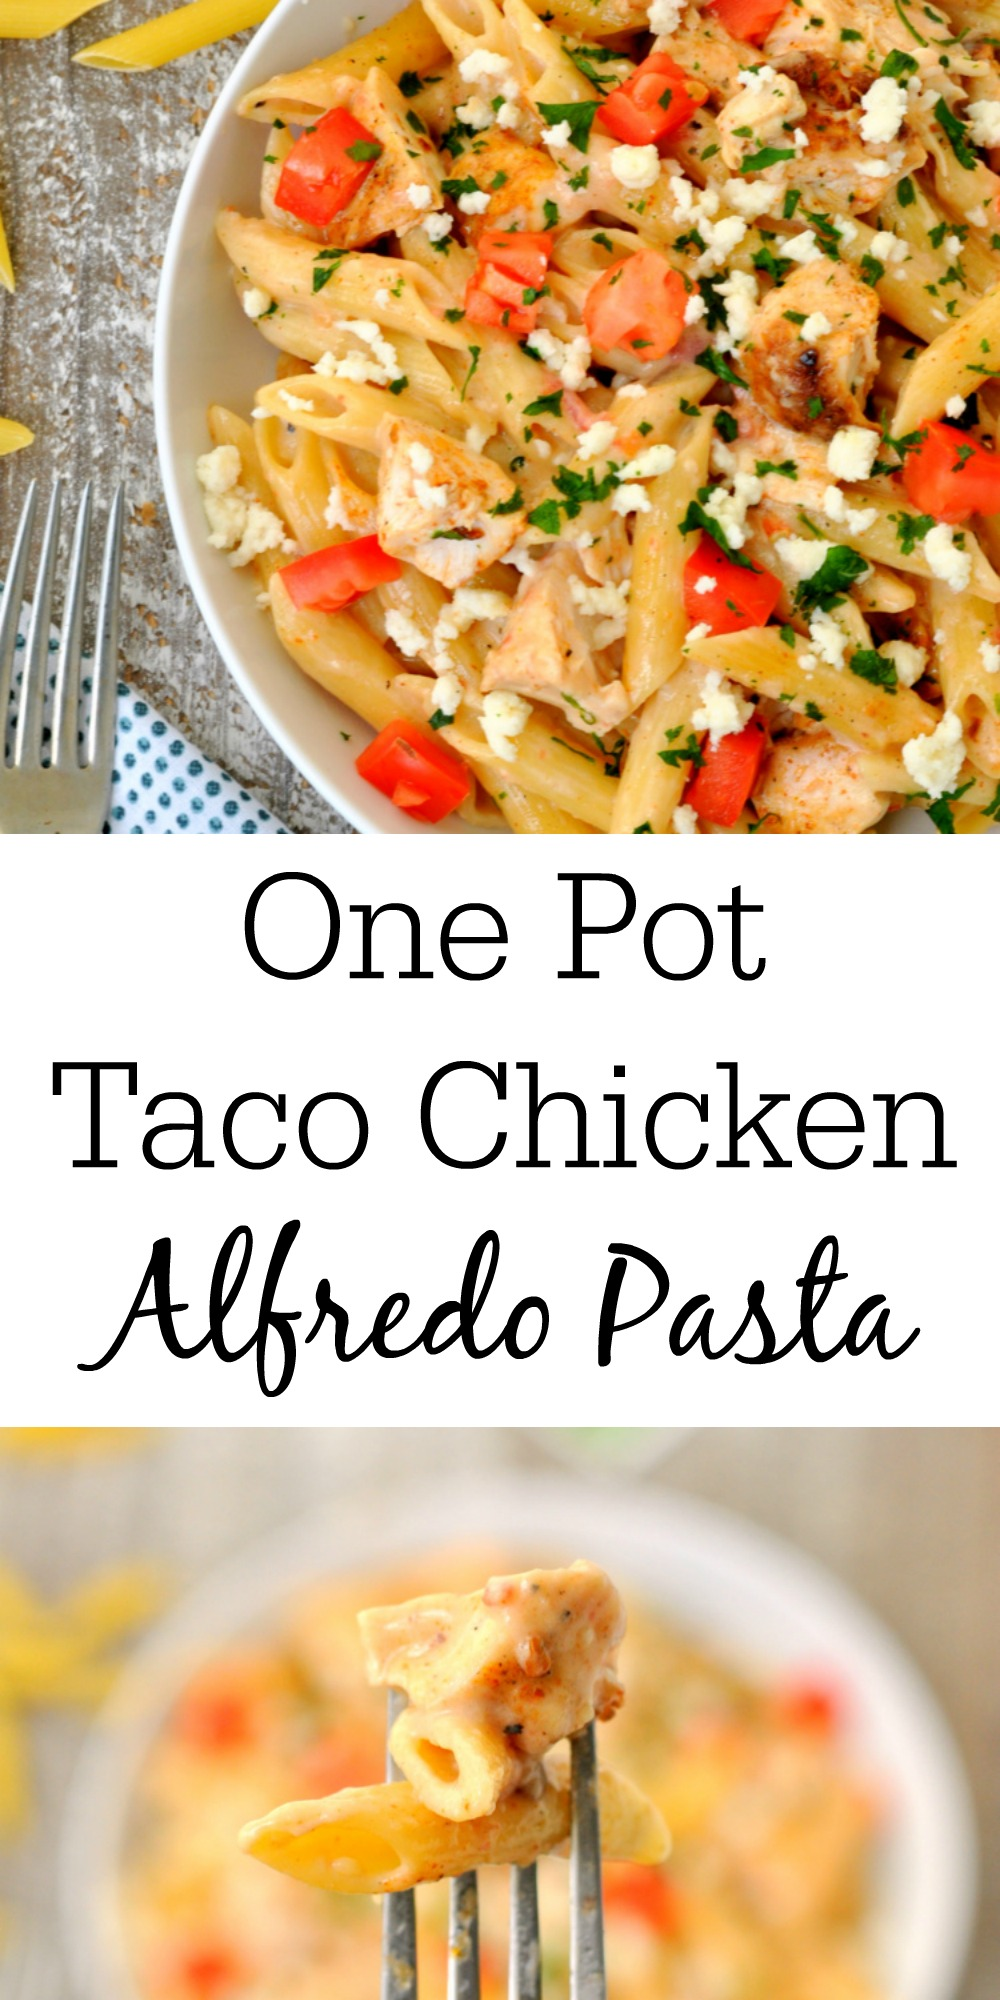 One Pot Pinterest Collage of Two Photos of Taco Chicken Alfredo Pasta